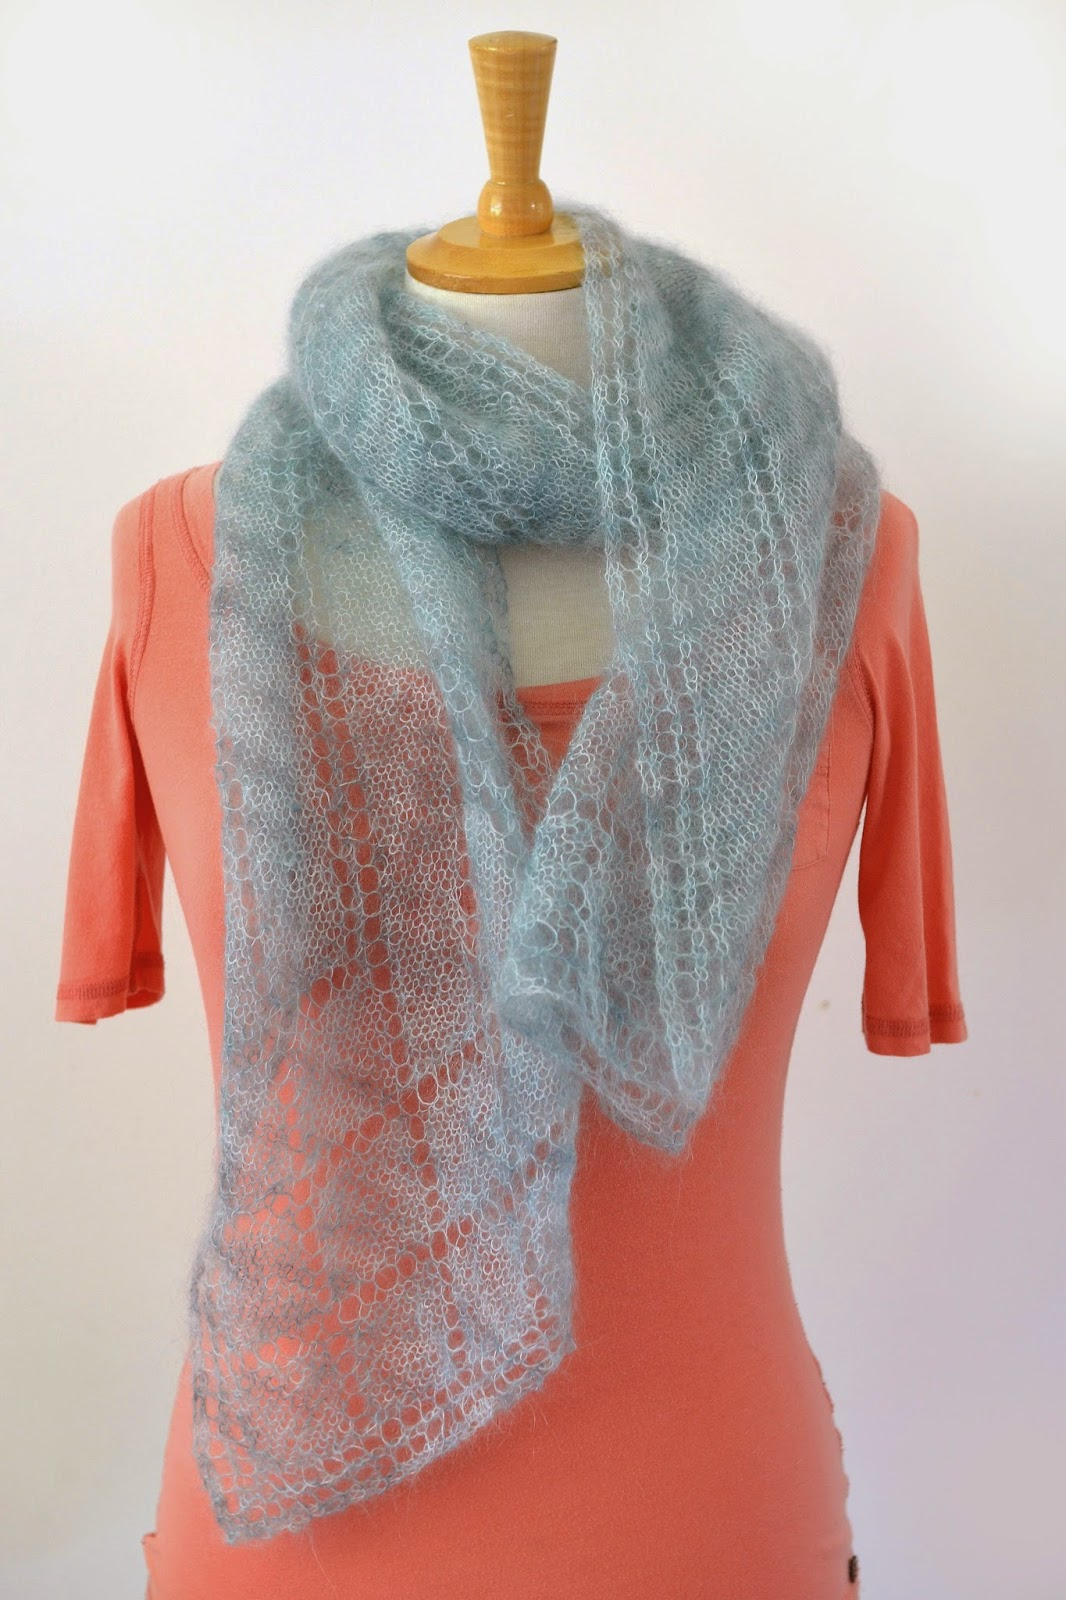 Rivelin scarf pattern by Katya Frankel